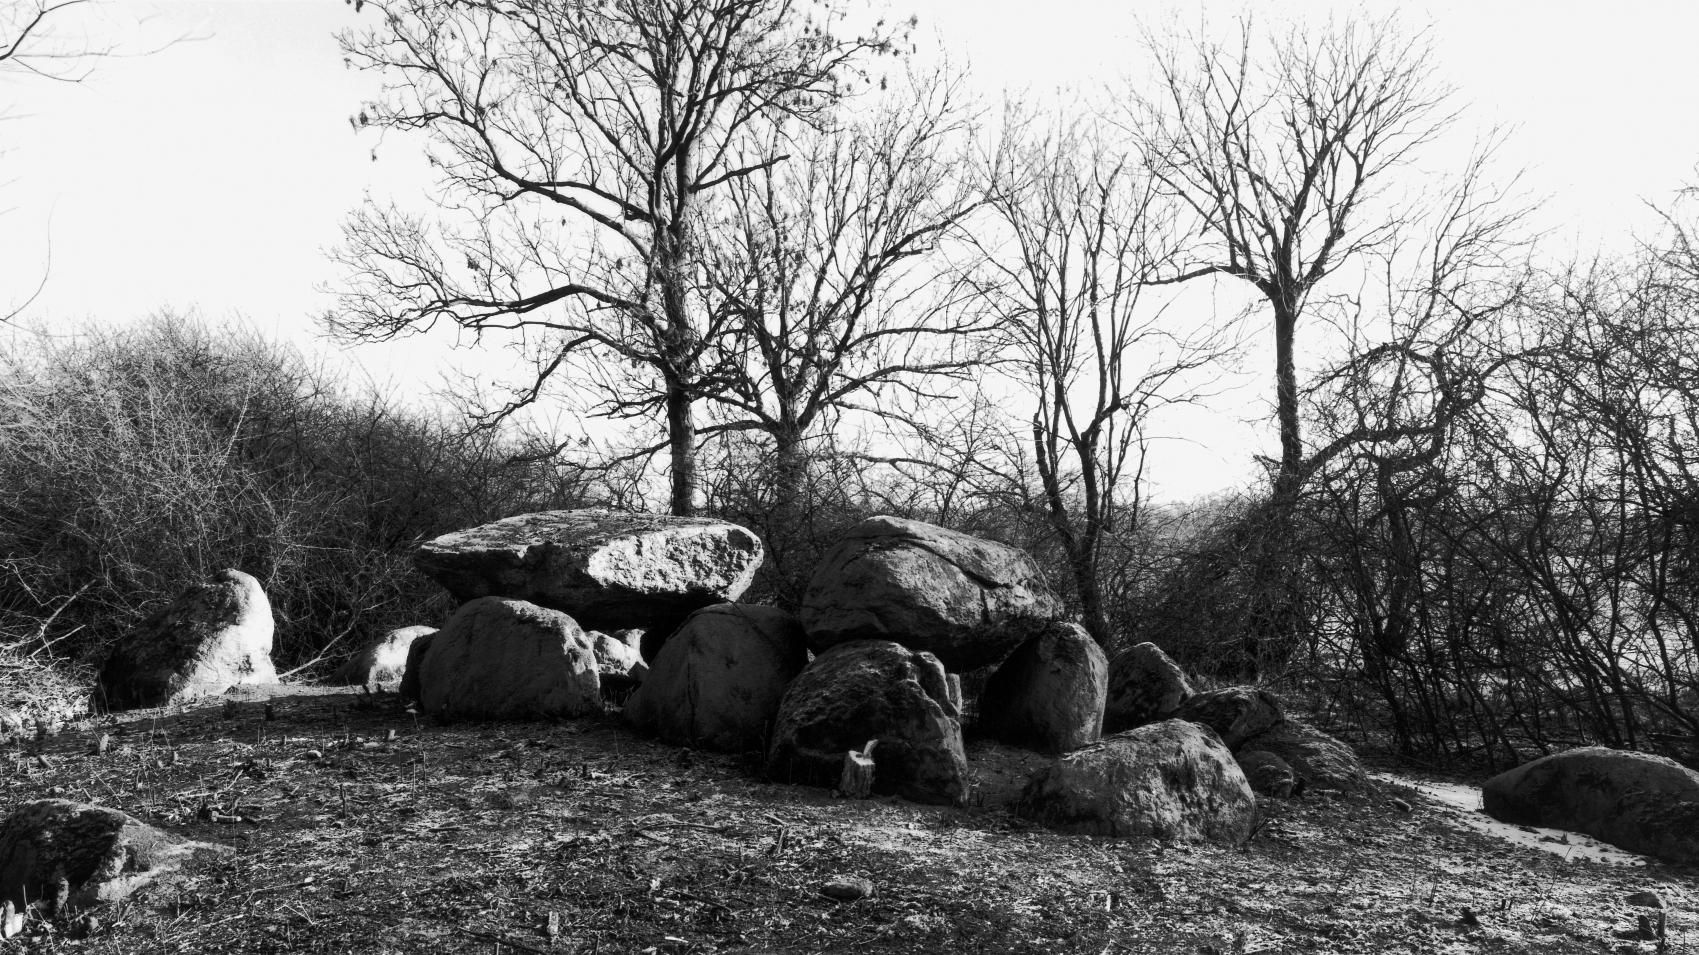 The large dolmen from Bretsch, site 2, in the district of Stendal. © State Office for Heritage Management and Archaeology Saxony-Anhalt, Juraj Lipták.